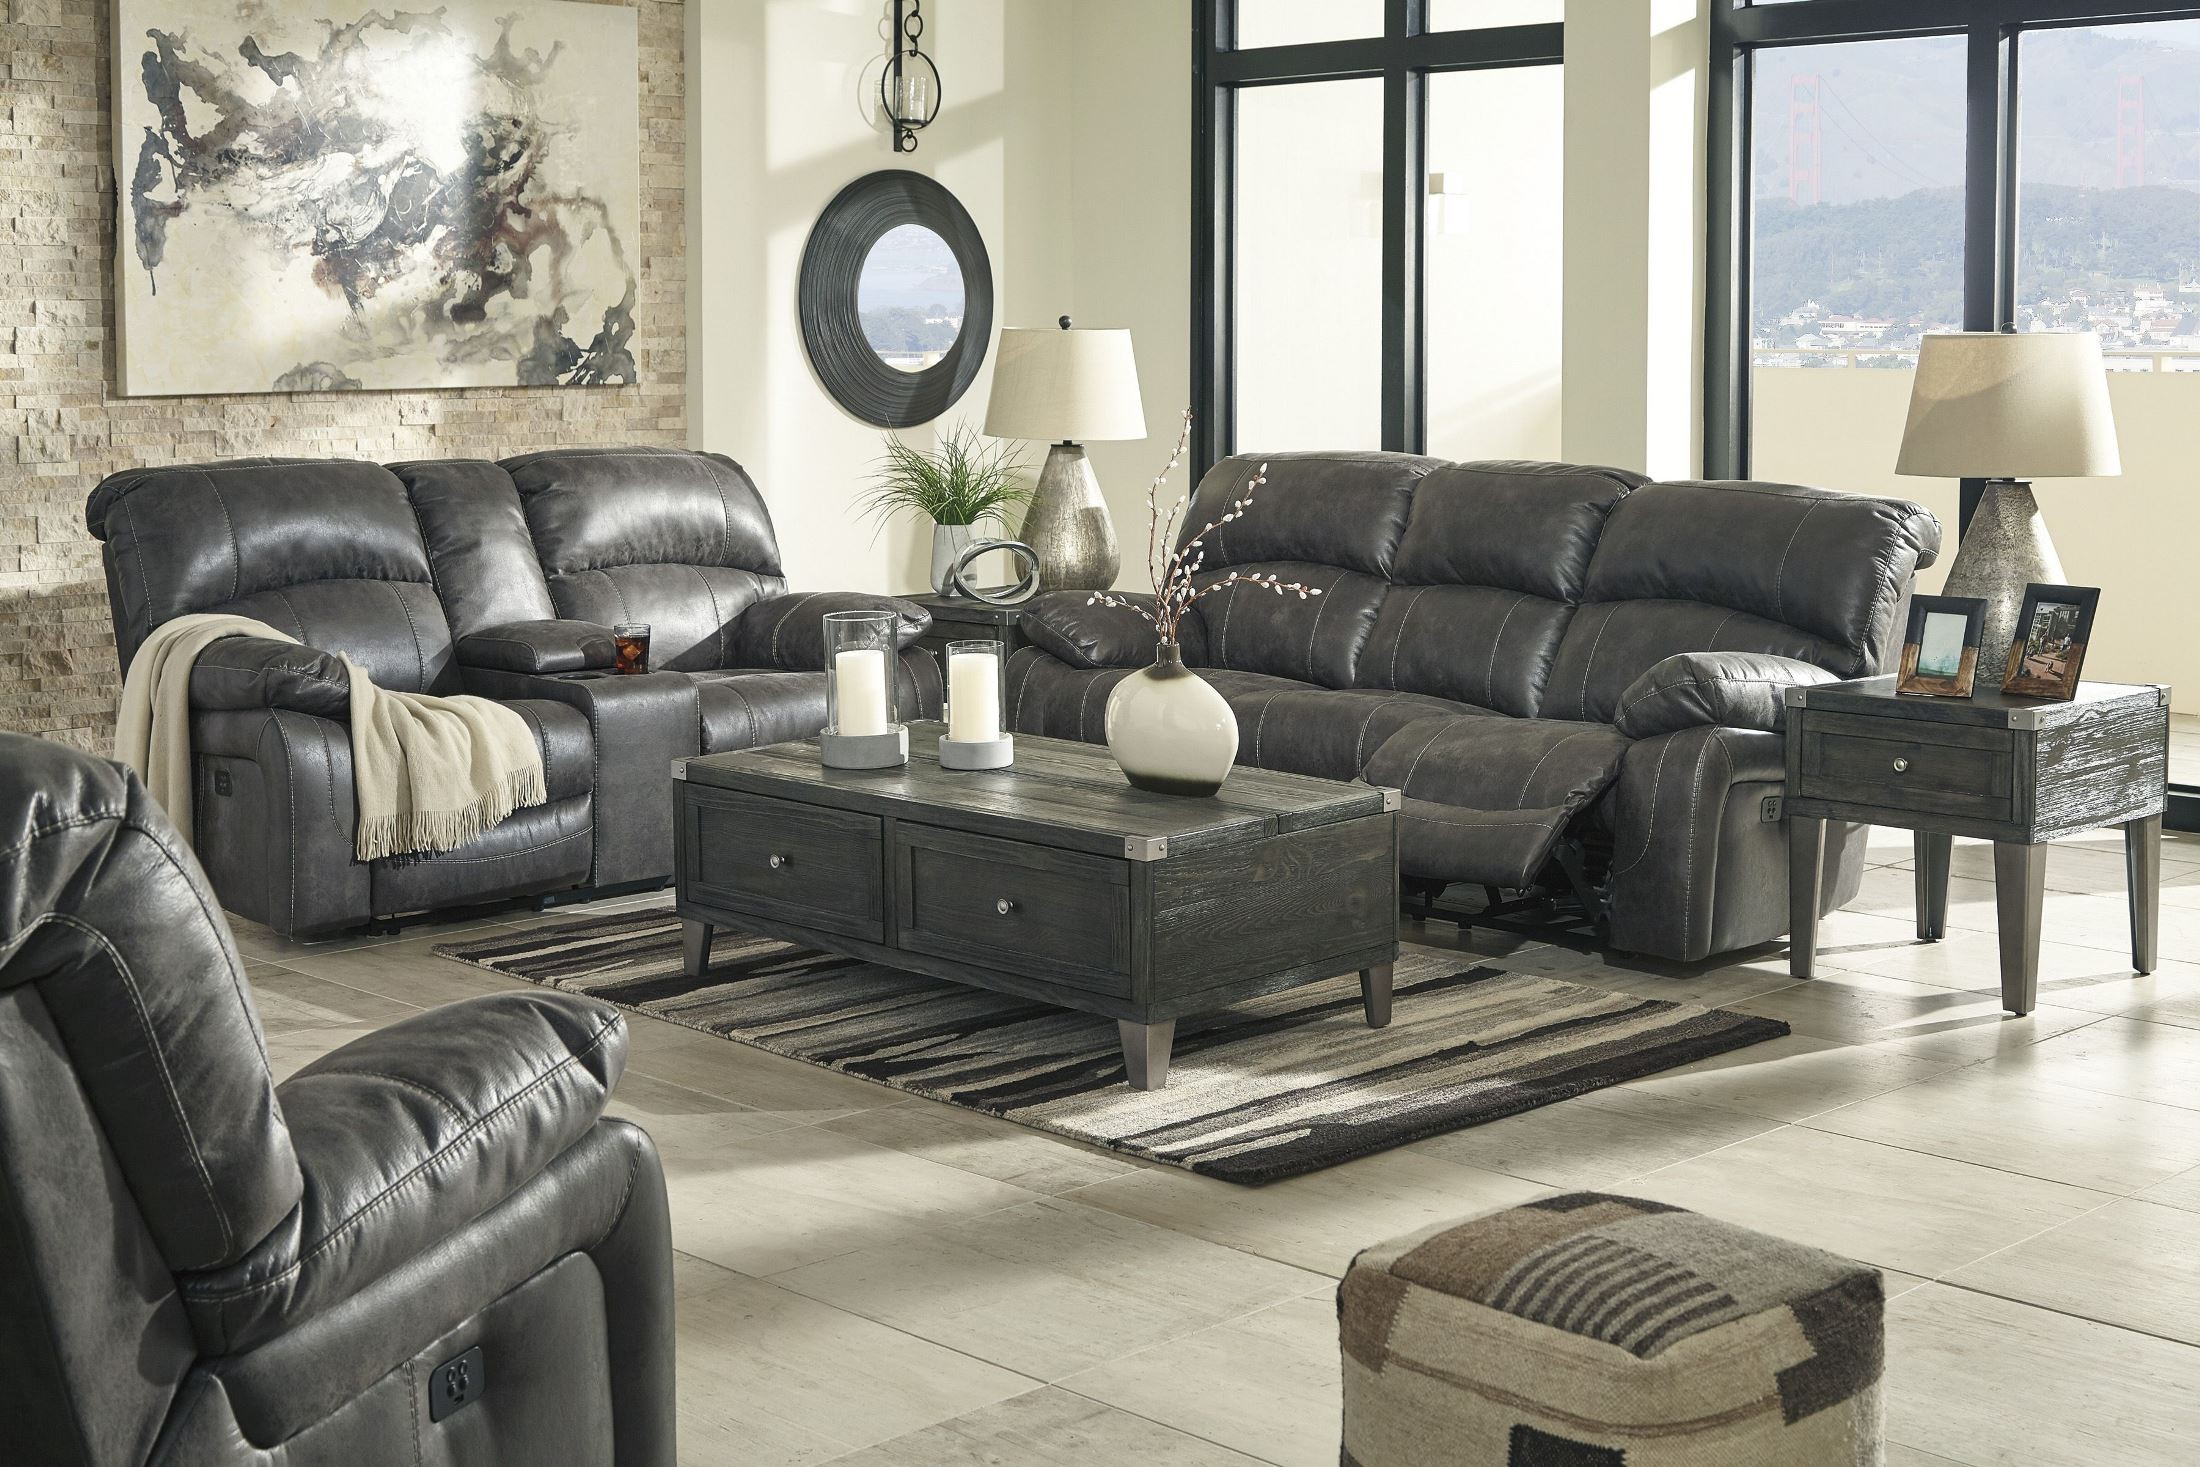 Dunwell Steel Power Reclining Living Room Set From Ashley: reclining living room furniture